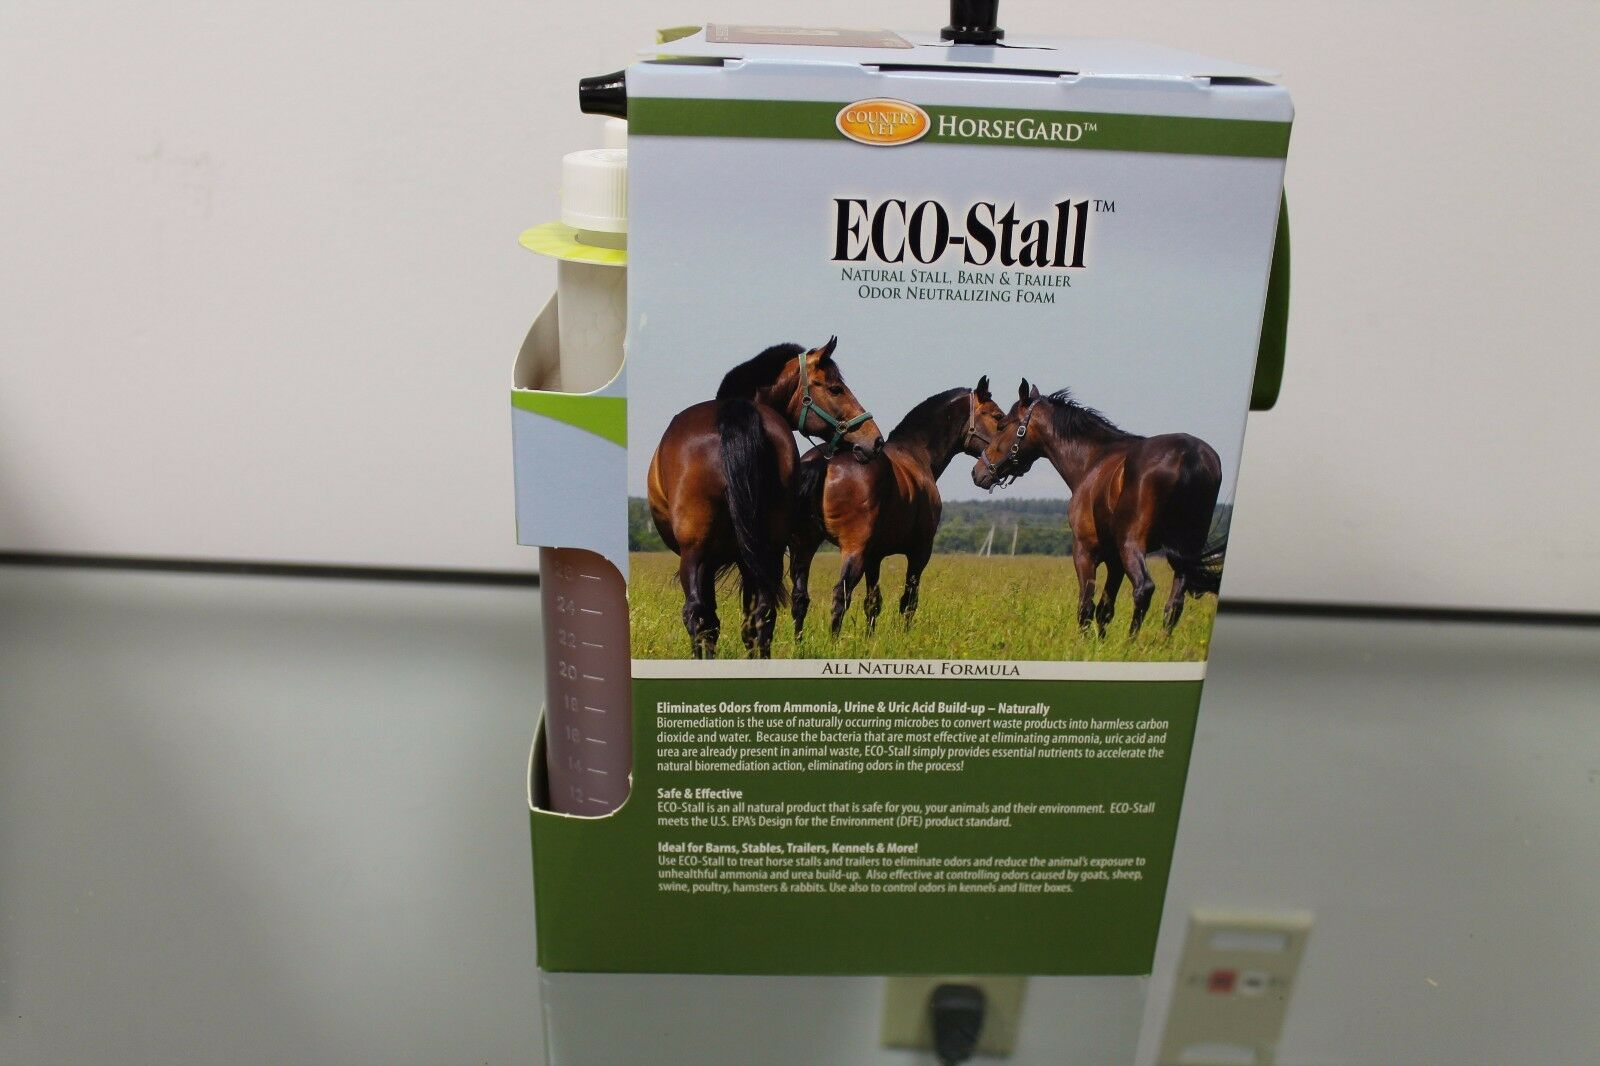 Country Vet Horse Guard Eco-Stall Foam with Sprayer Reduces Odor Barn  Trailer